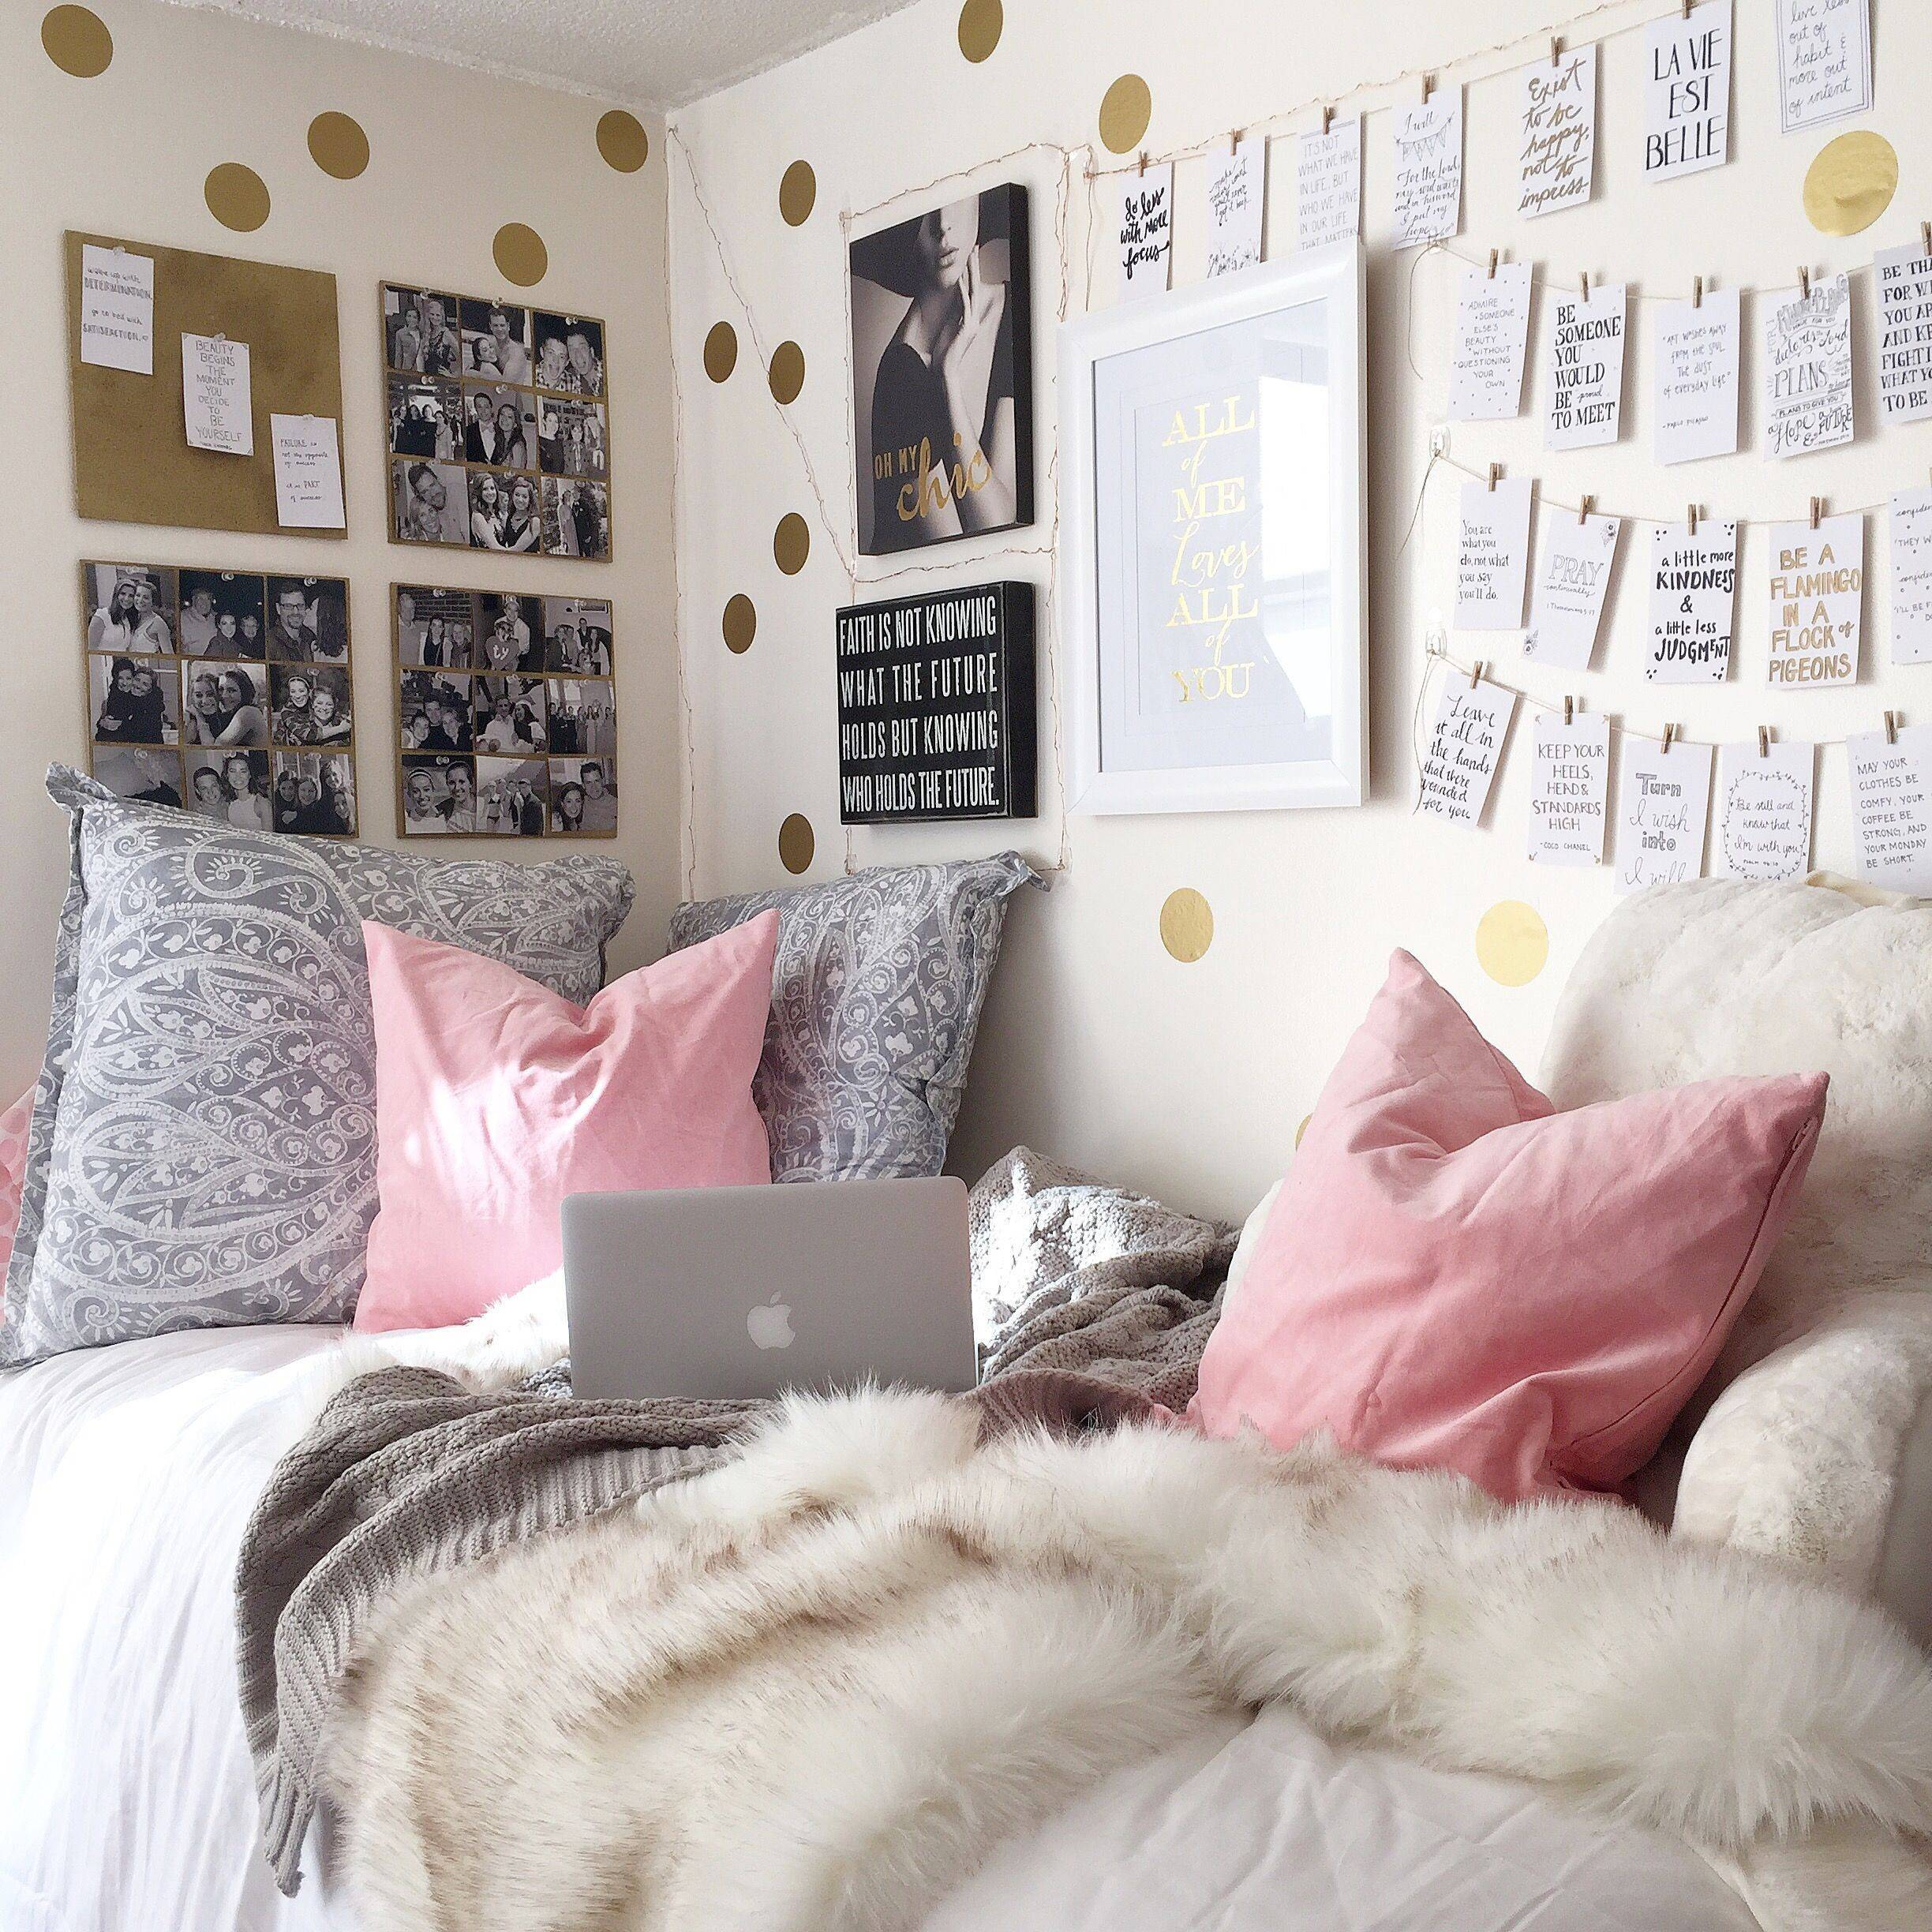 10x10 bedroom ideas awesome cute bedroom ideas for 13 year olds print ideas for small bedrooms of 10x10 bedroom ideas